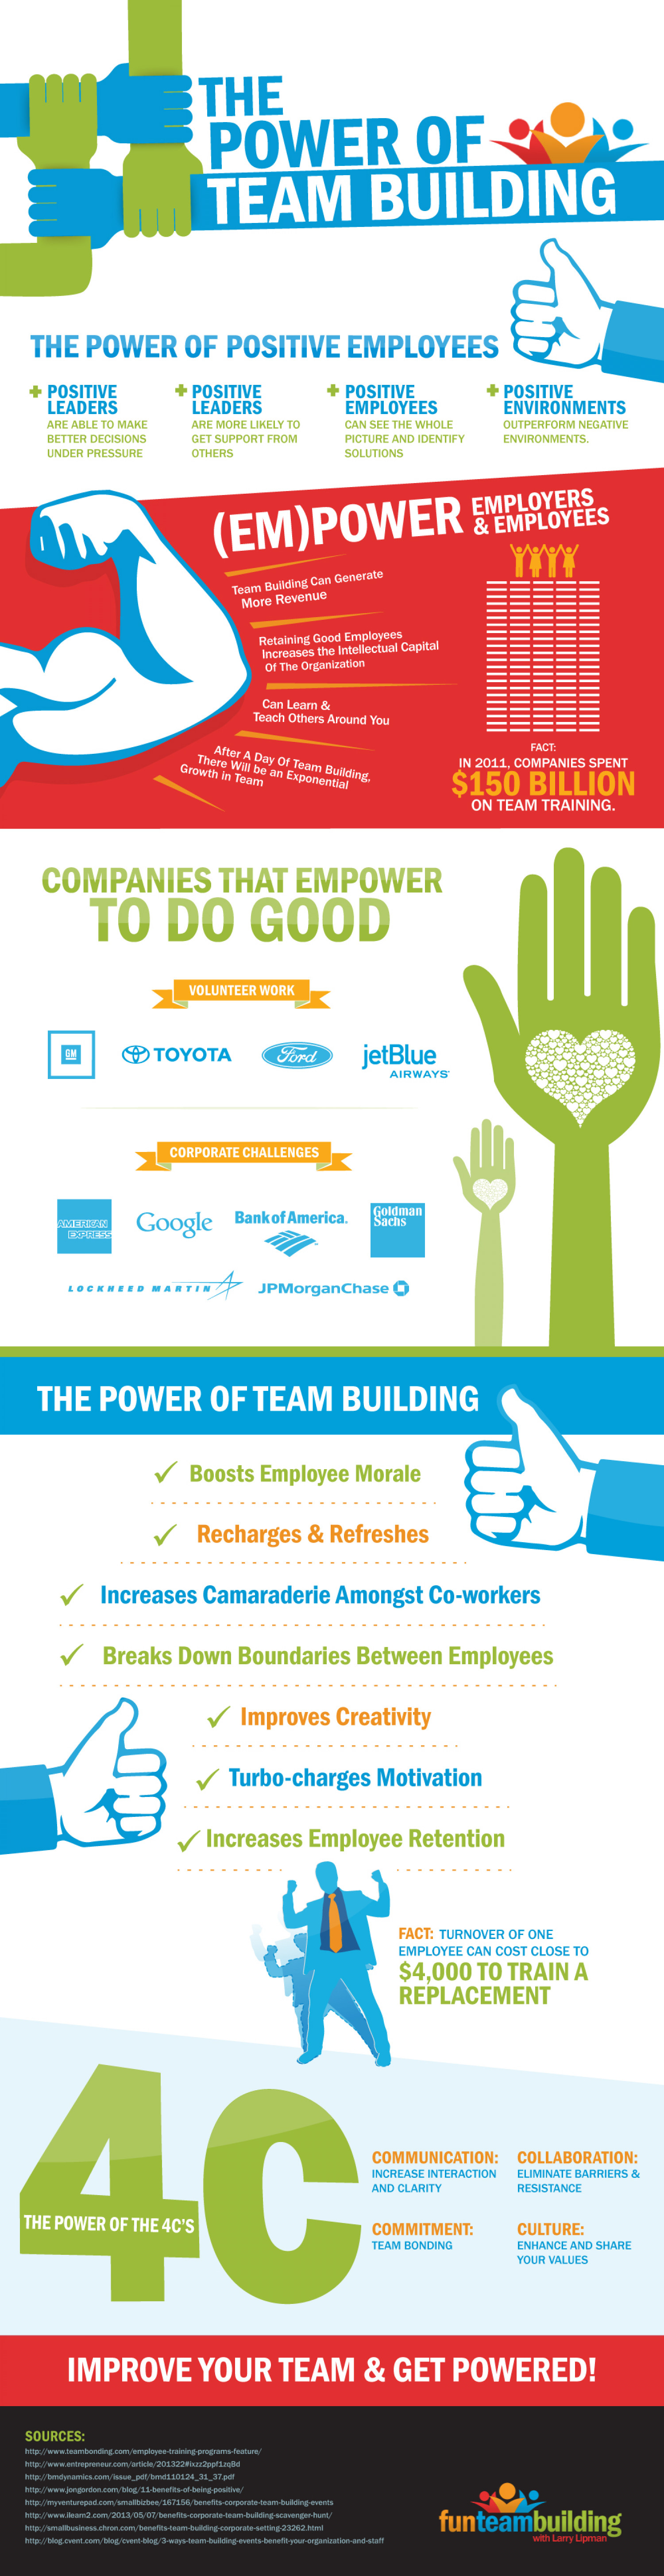 The Power of Team Building Infographic